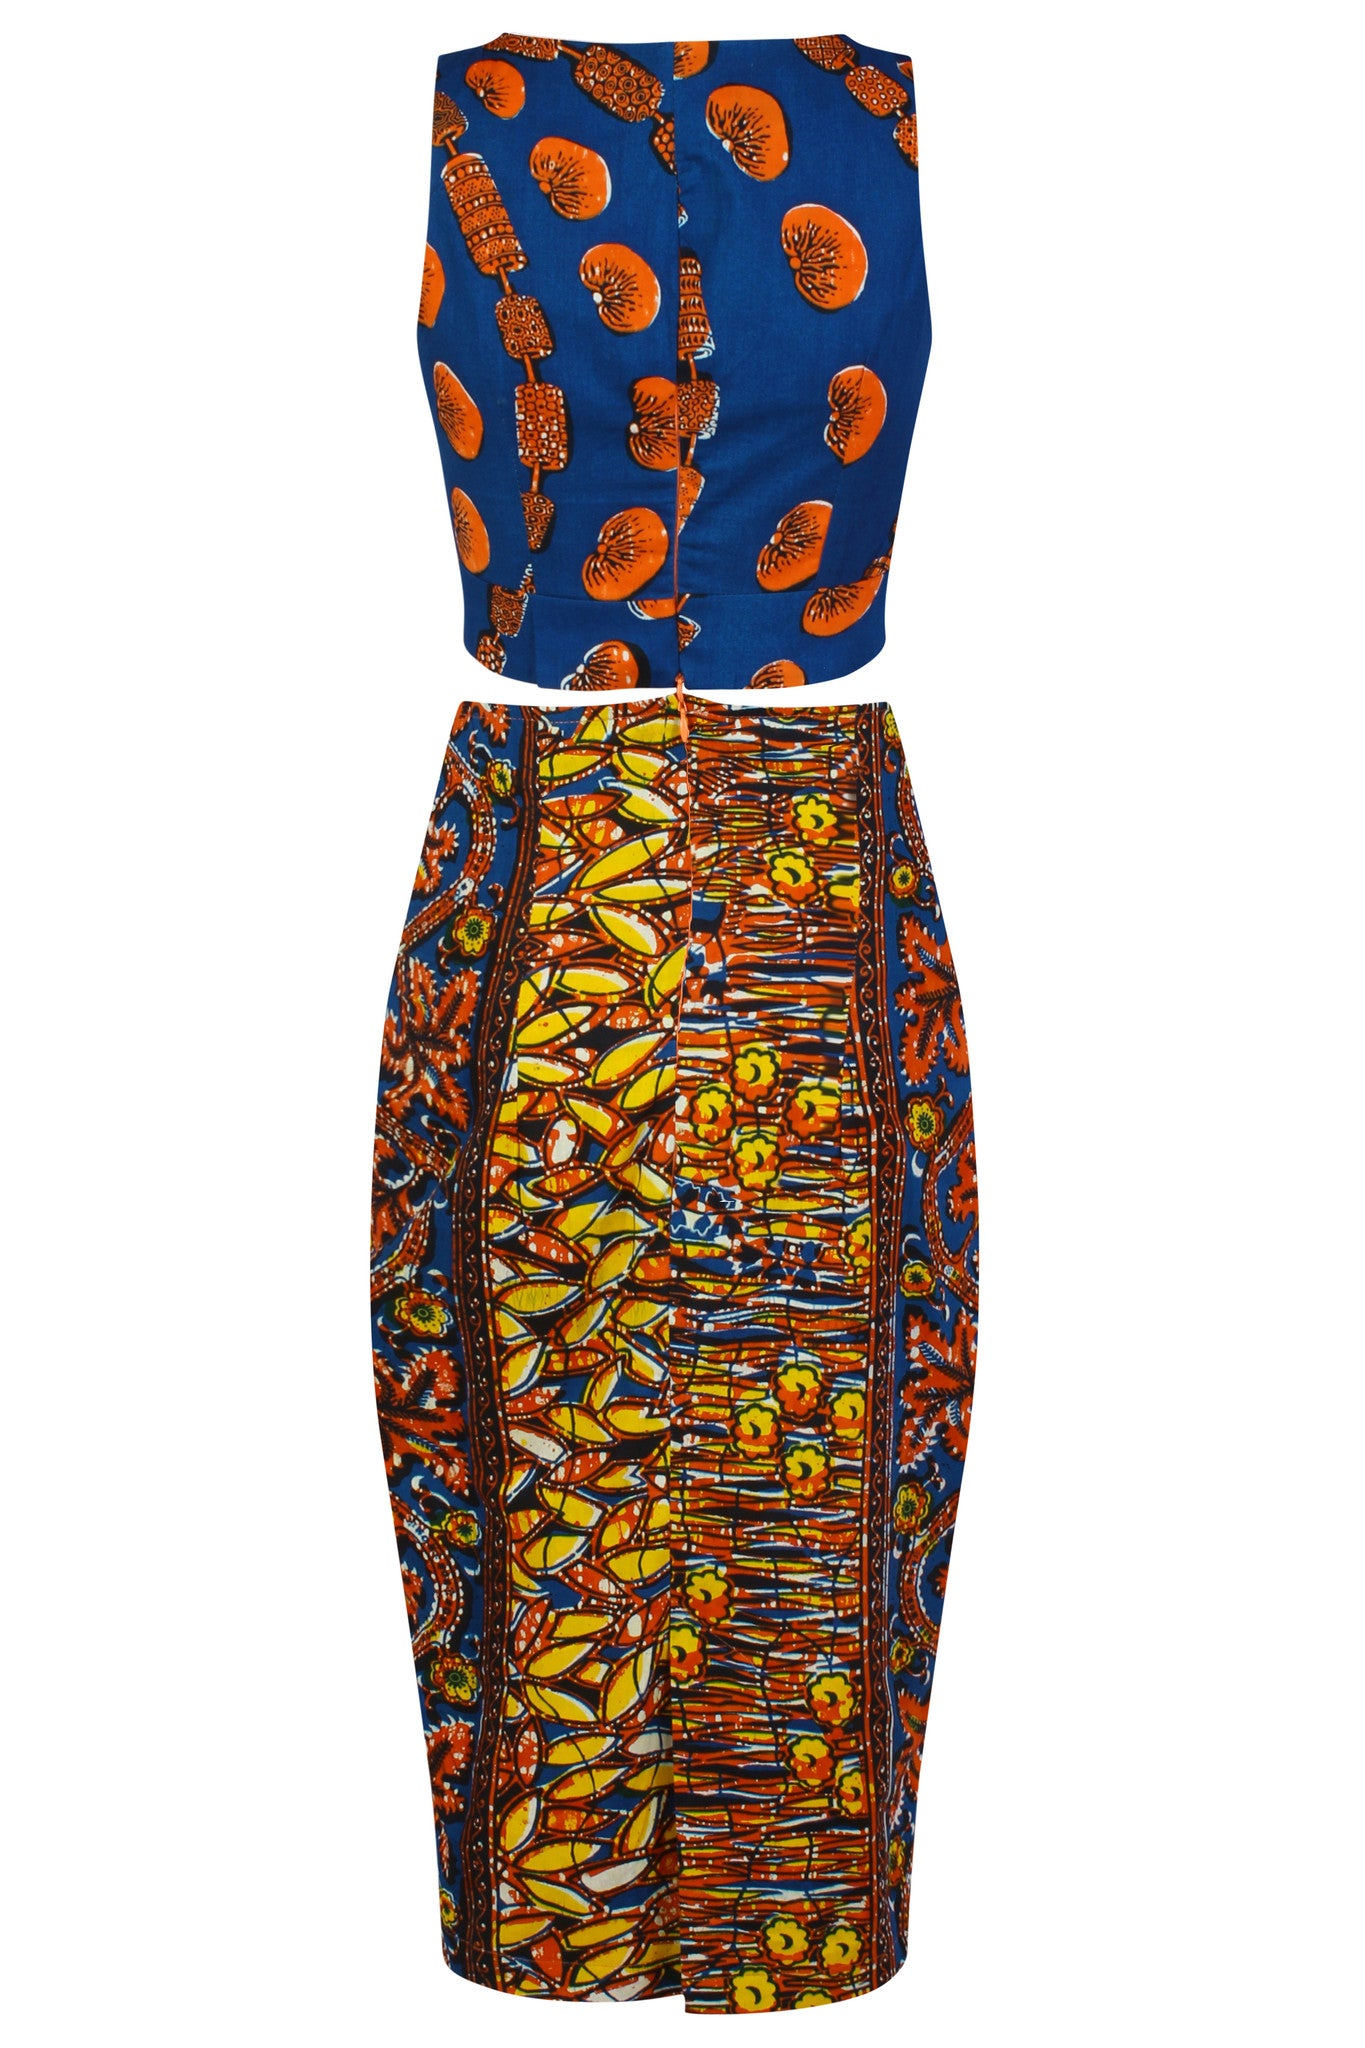 'Odor' Patterned Two piece Co-Ord dress - OHEMA OHENE AFRICAN INSPIRED FASHION  - 2